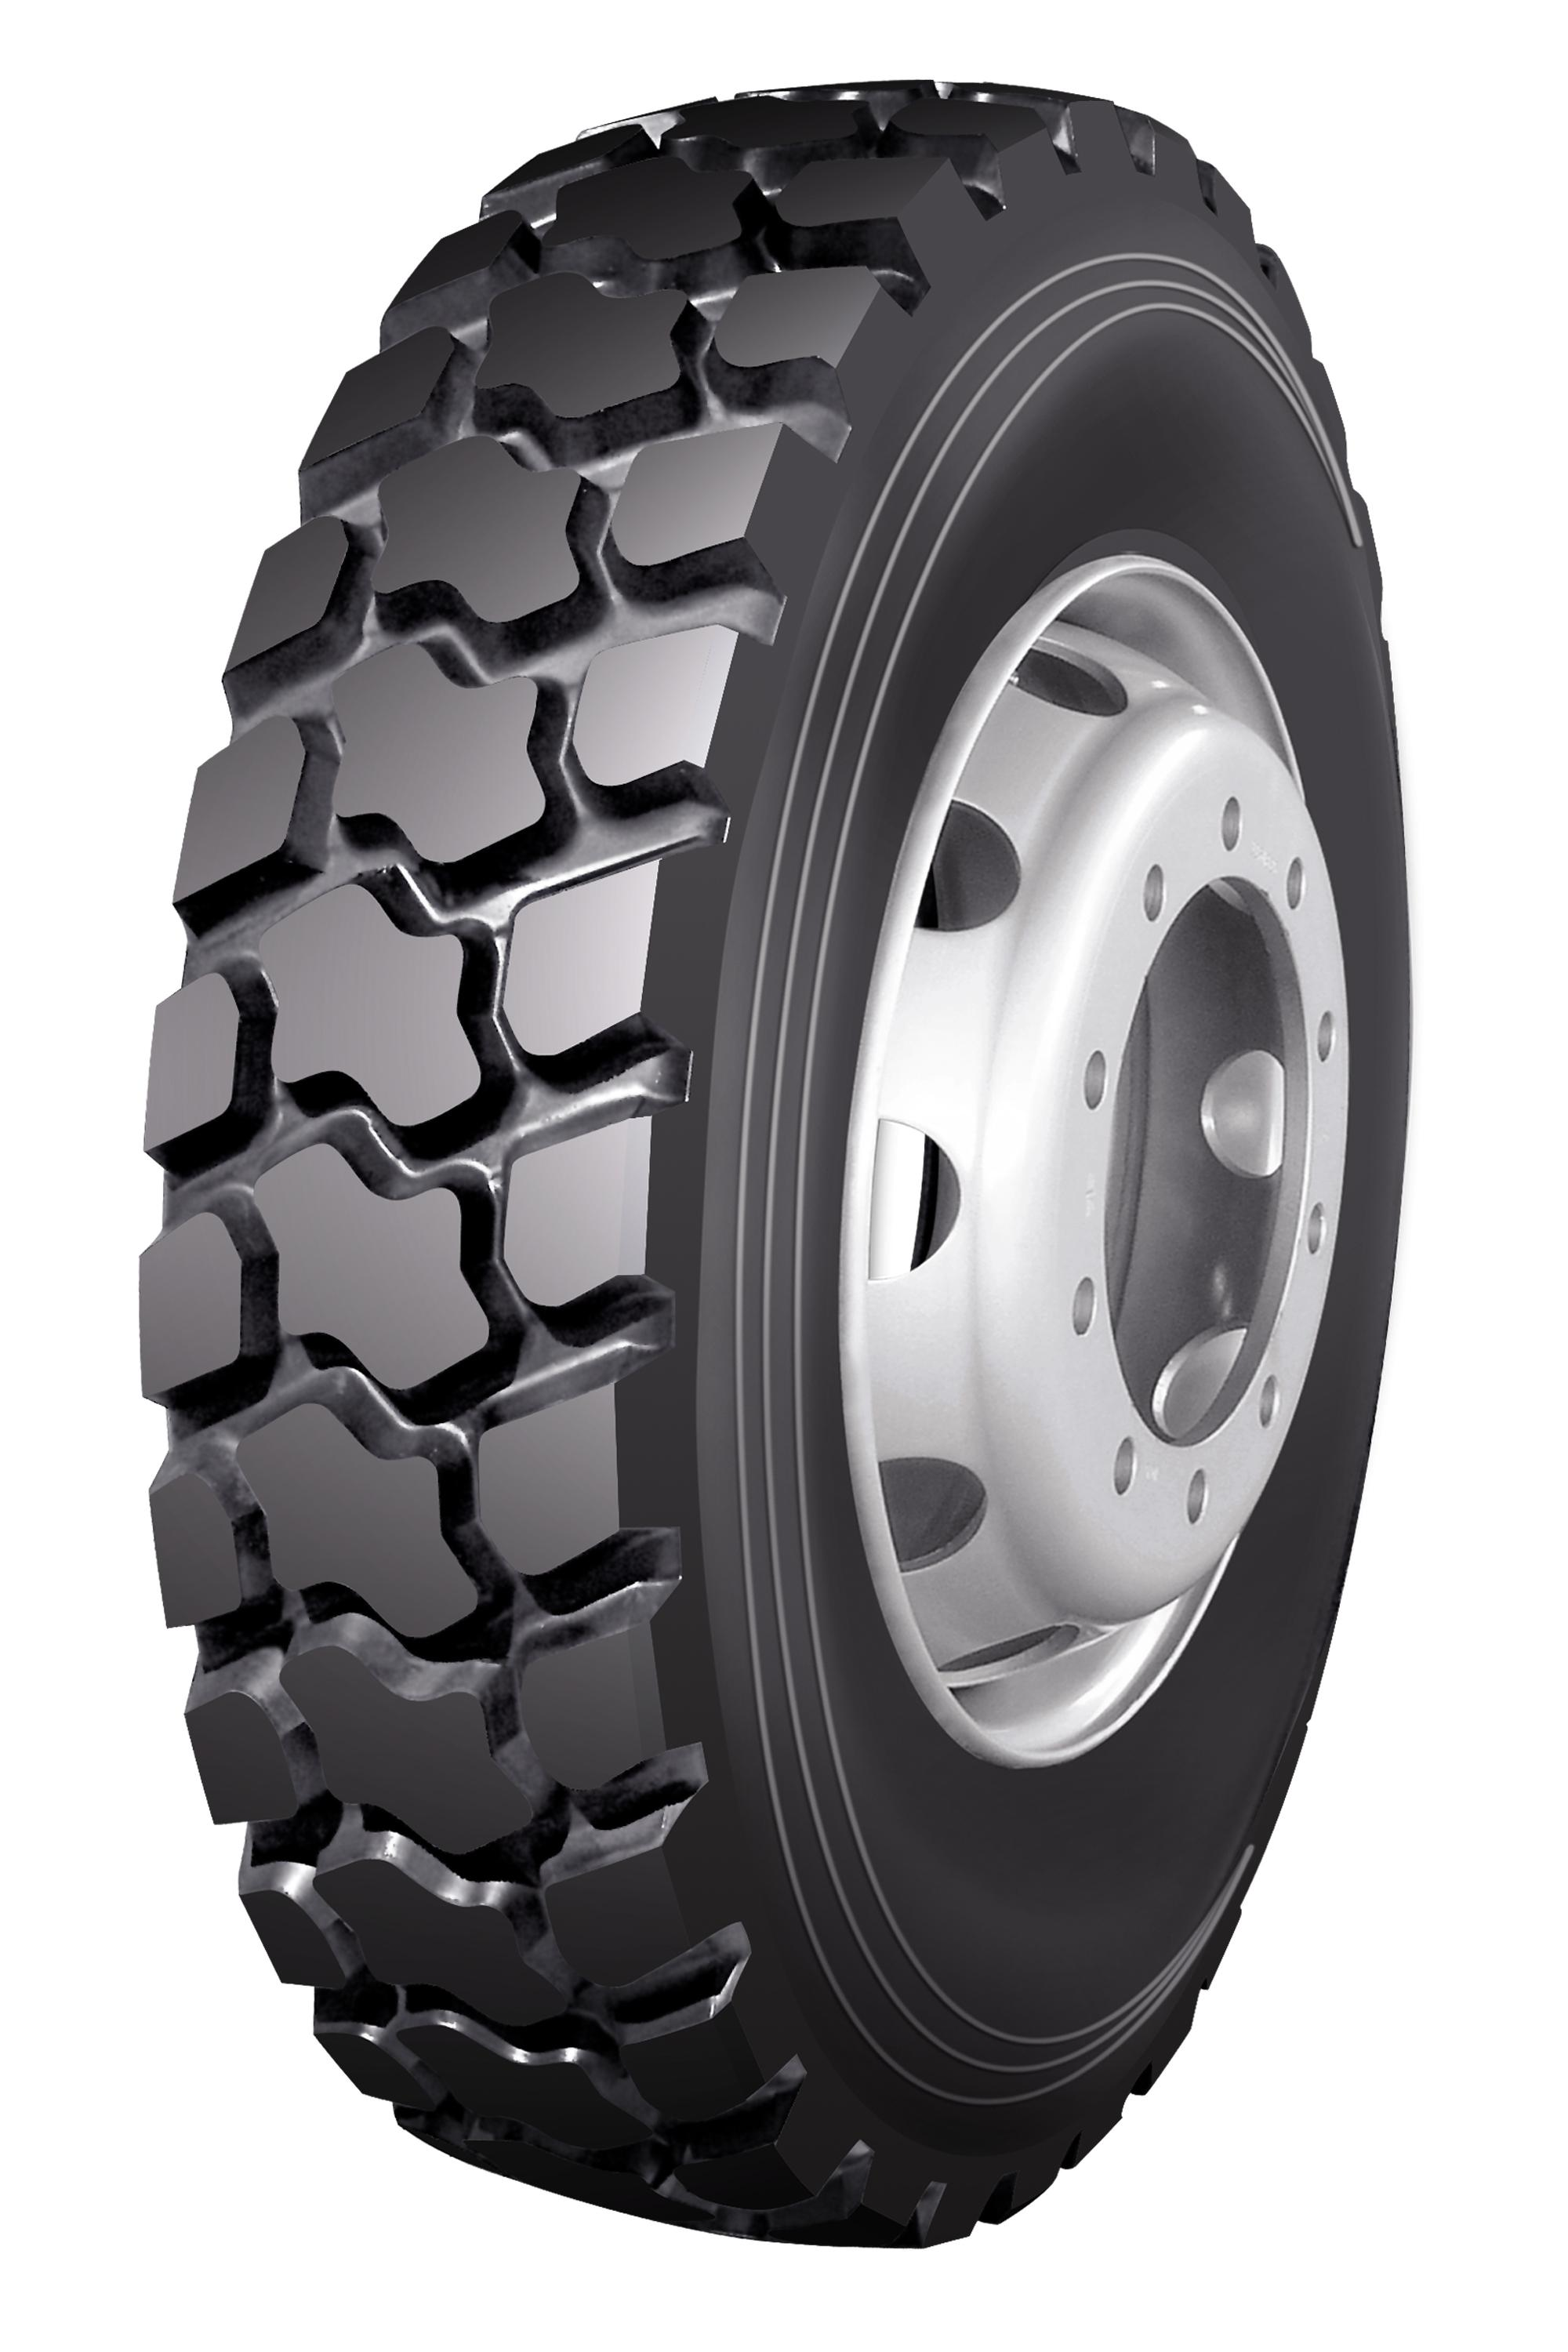 LM301 ALL STEEL RADIAL TRUCK AND BUS TYRES